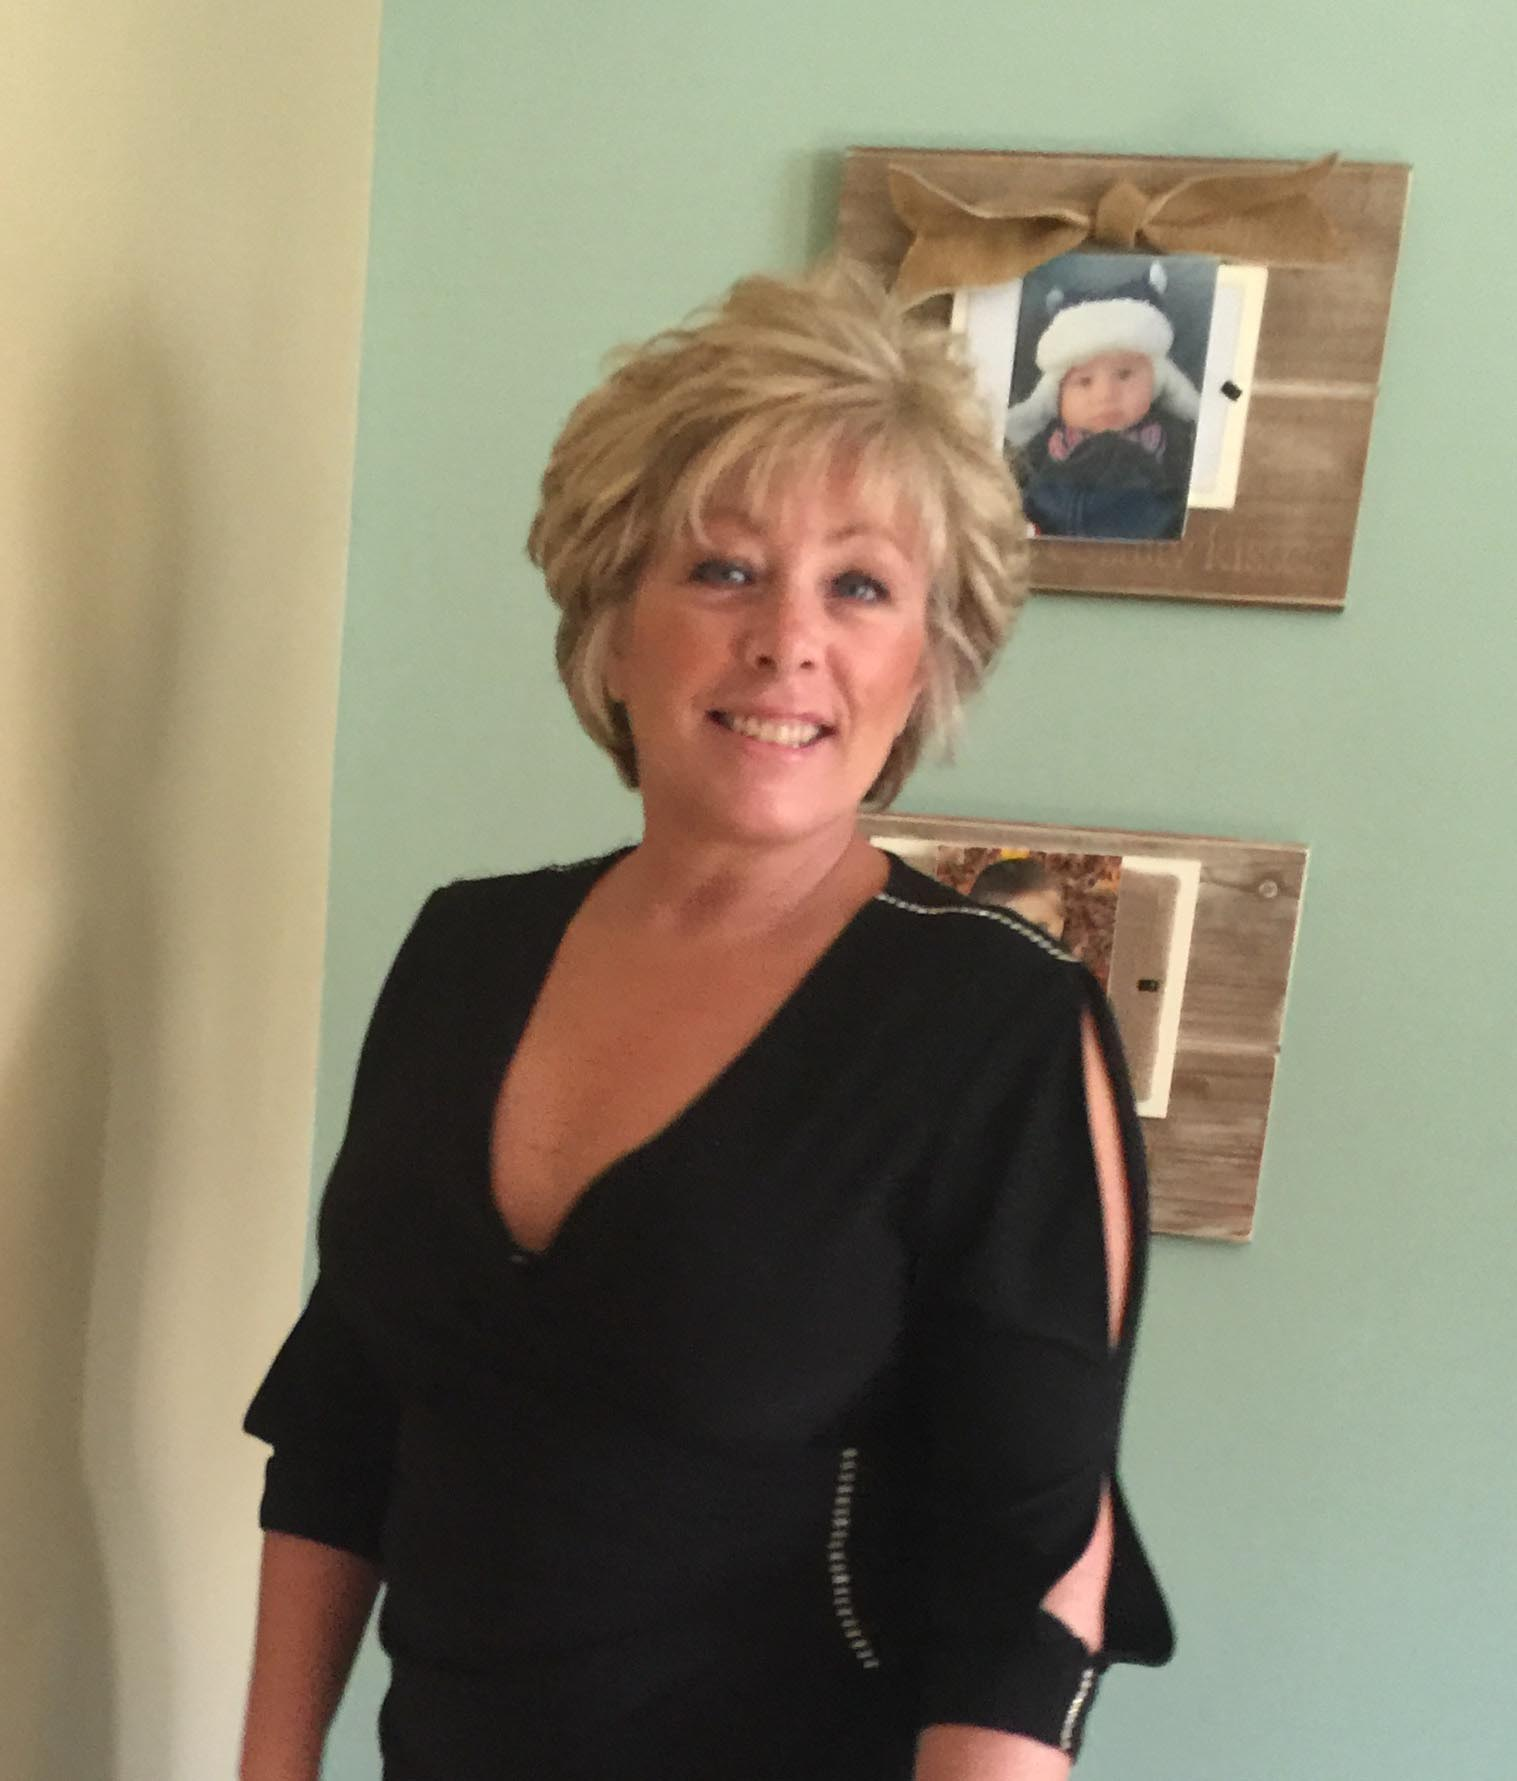 Jill Gordon is pictured in her house.